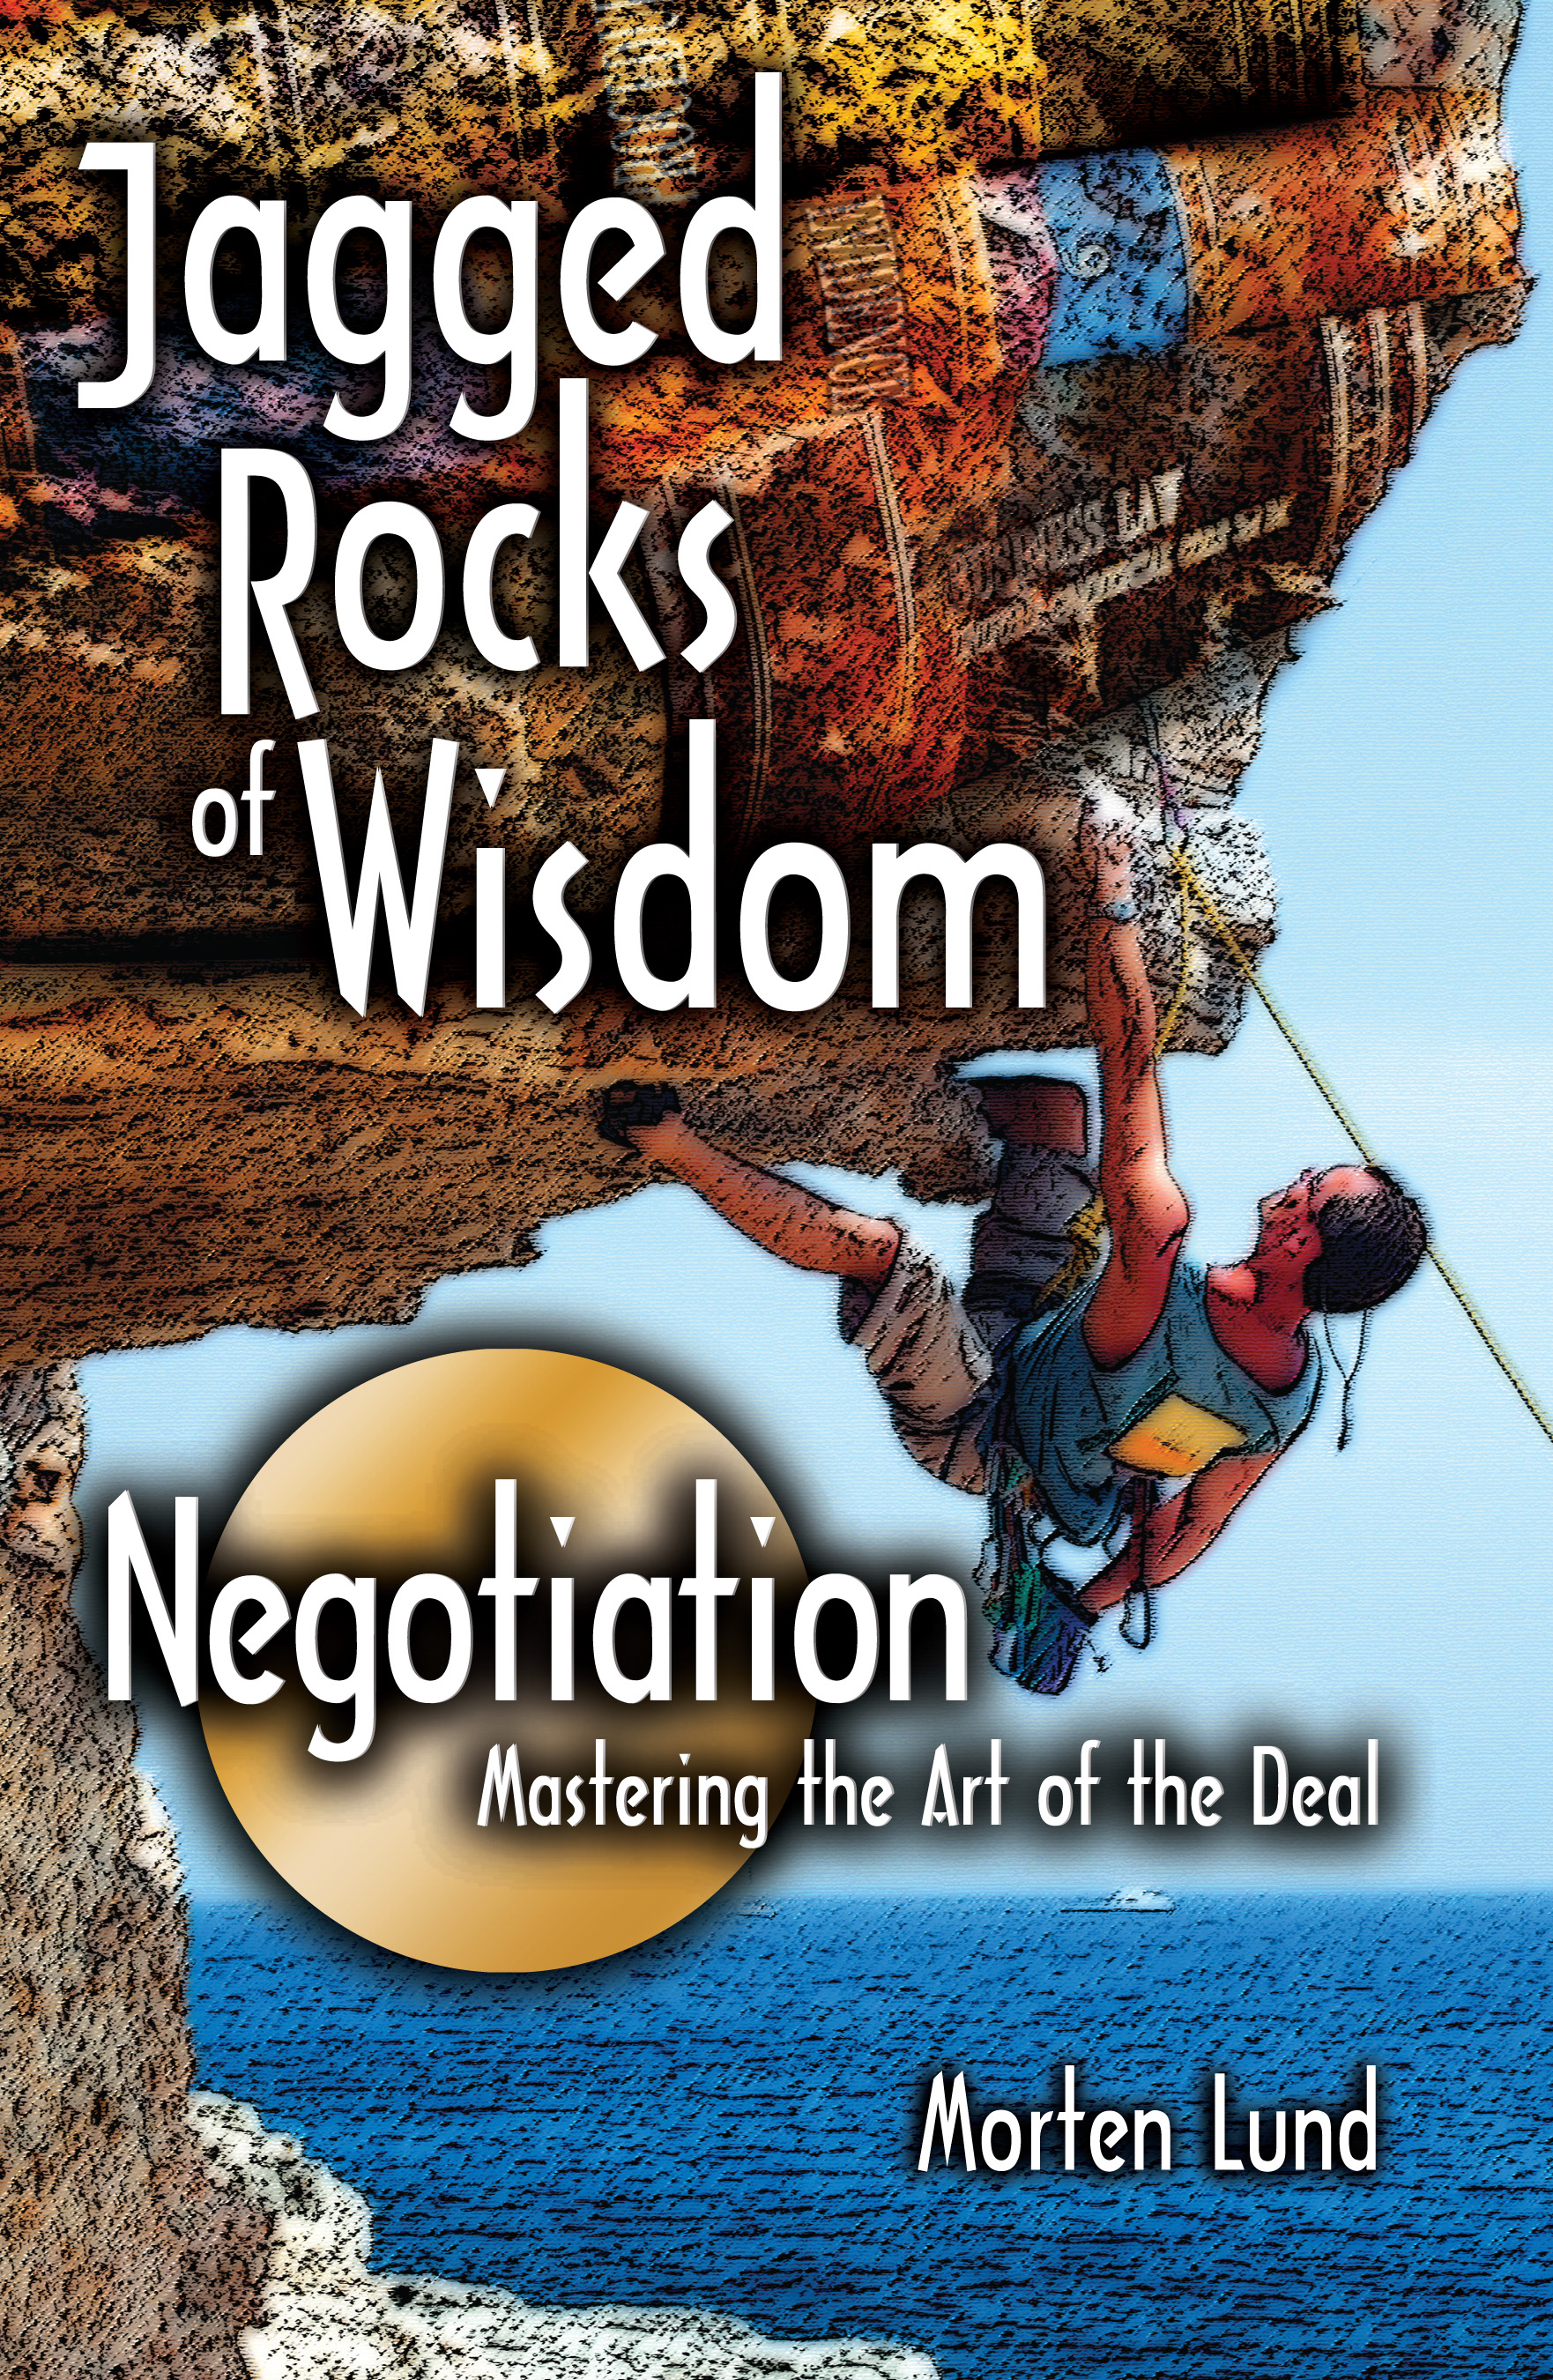 Jagged Rocks of Wisdom—Negotiation